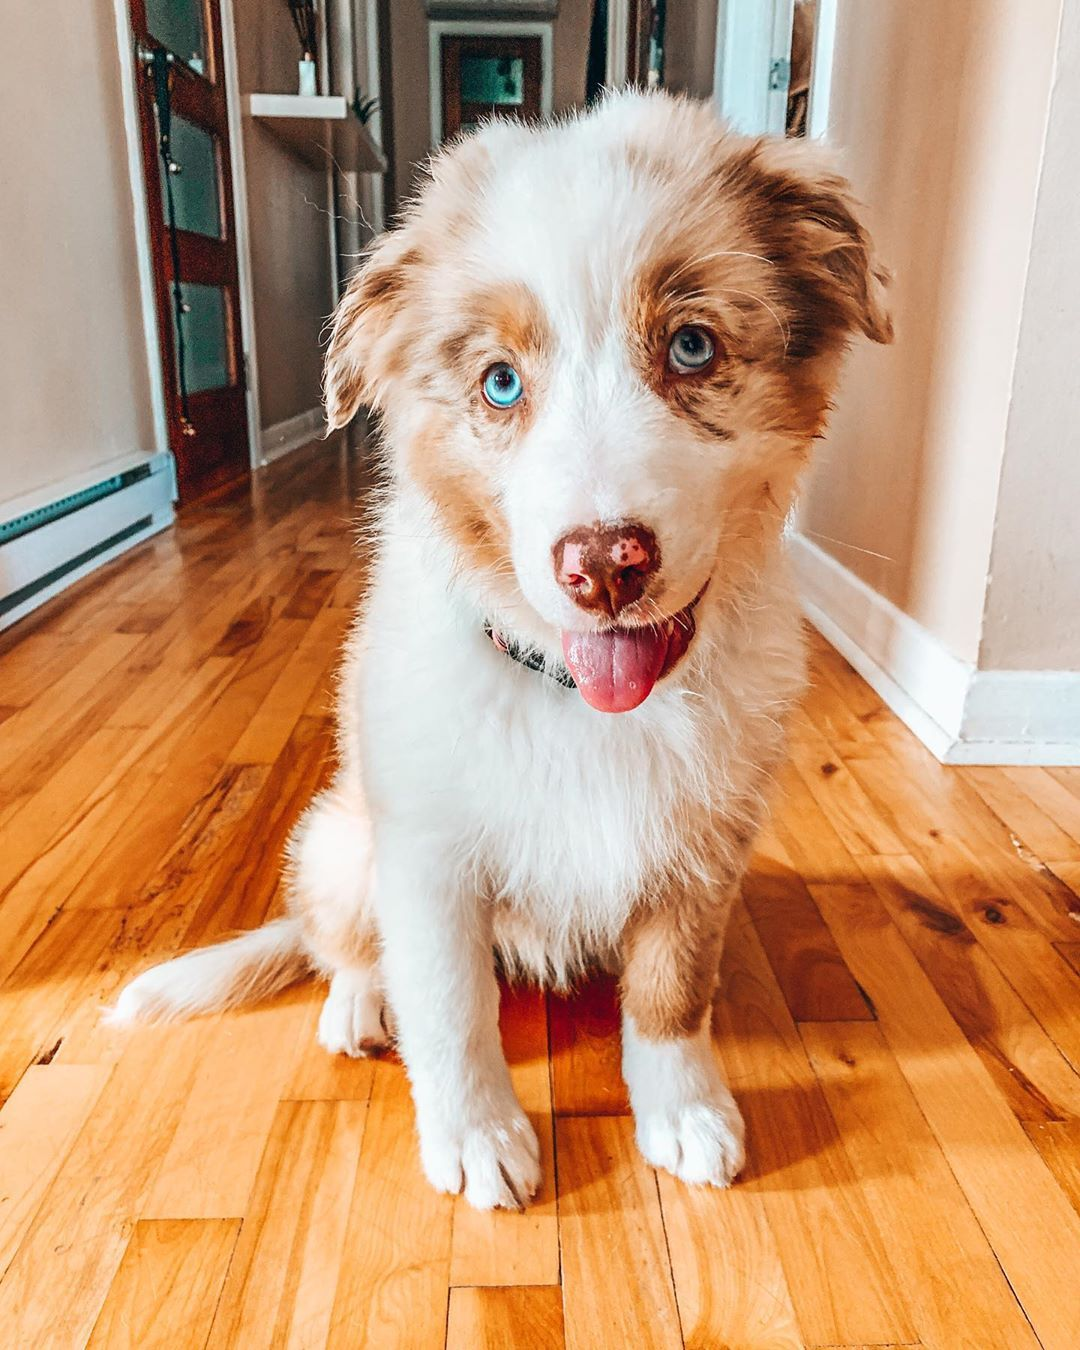 Dog And Baby Dog Projects Home Dog Dogs And Puppys Pet Dog Puppy Lovely Dog Cute Dog Cute Dog S Dog In 2020 Smiling Dogs Pet Dogs Puppies Dog Projects